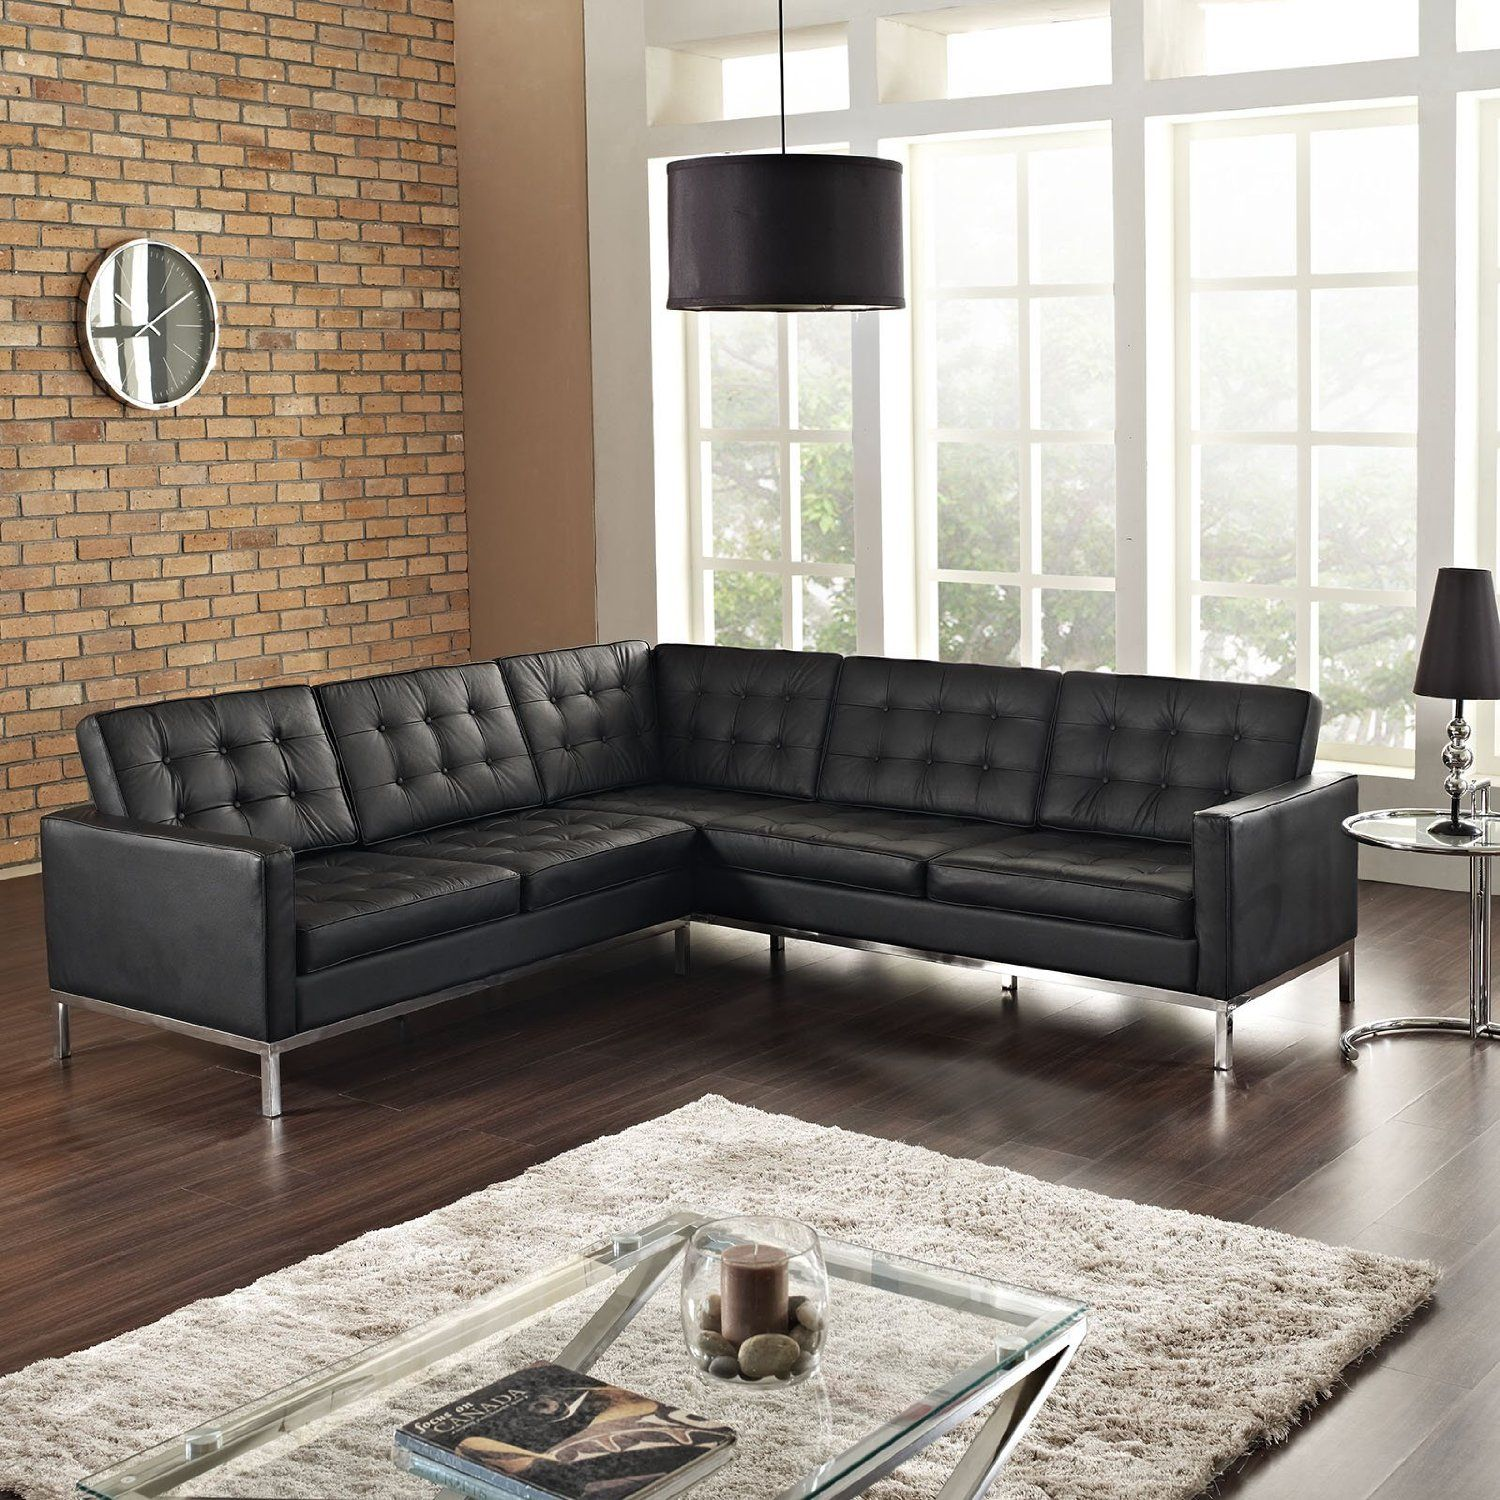 pretty black semi leather sectional l shaped couch  pieces with  - pretty black semi leather sectional l shaped couch  pieces with stainlesssteel polished leg on